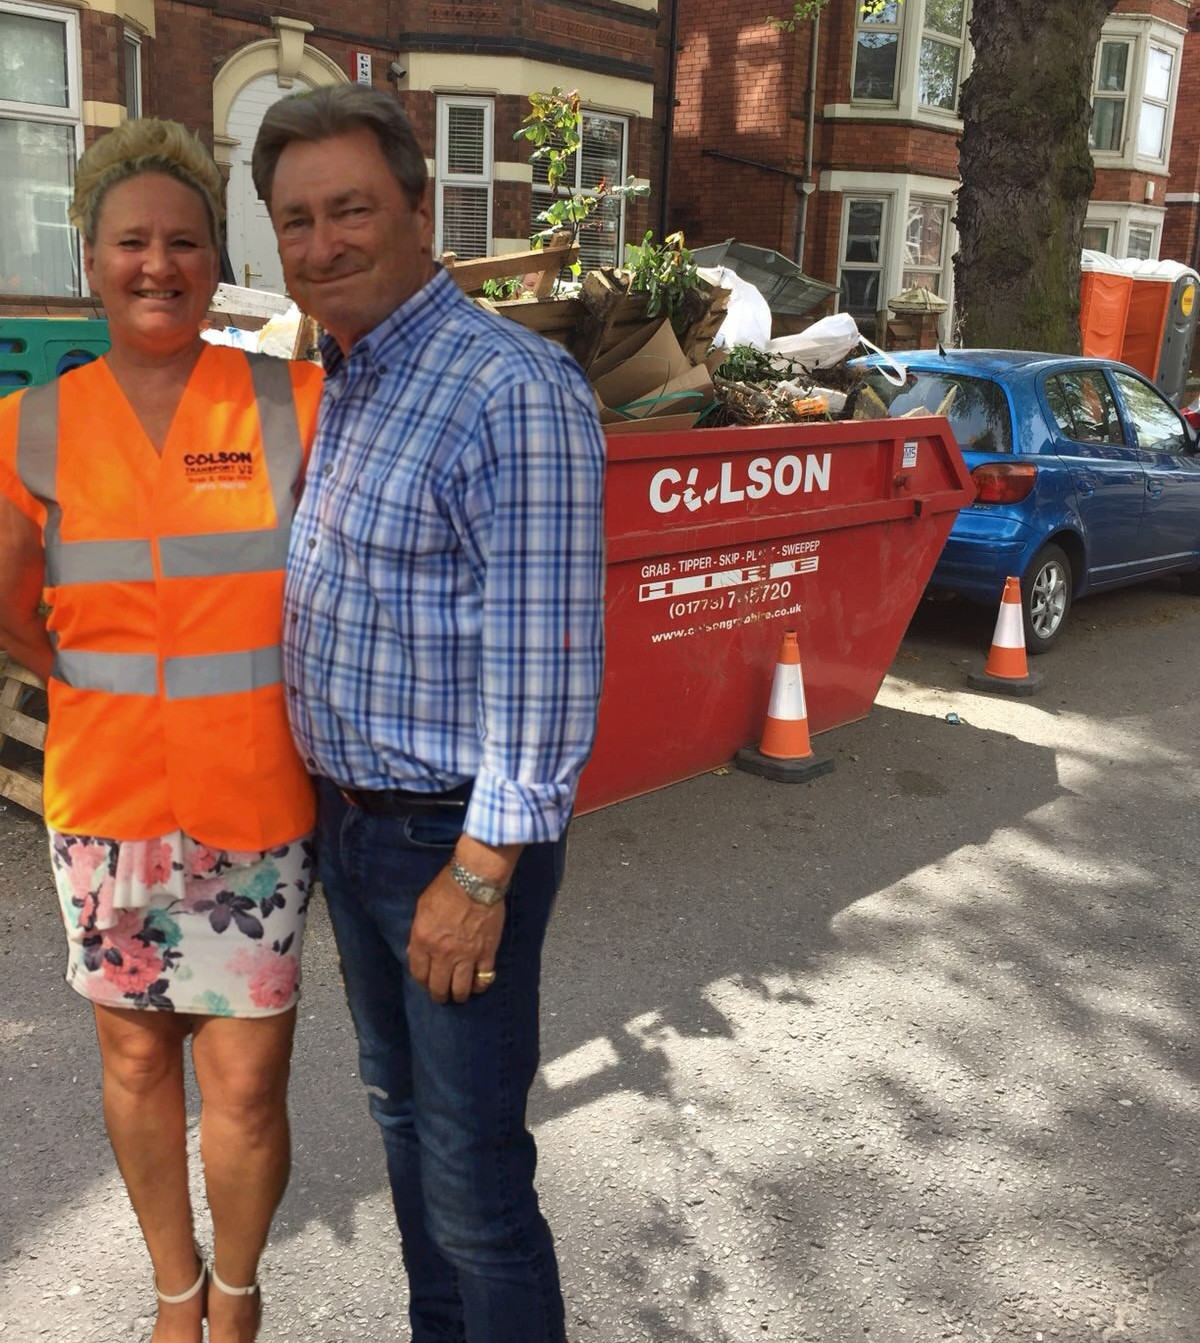 colson transport skip nottingham with alan titchmarsh